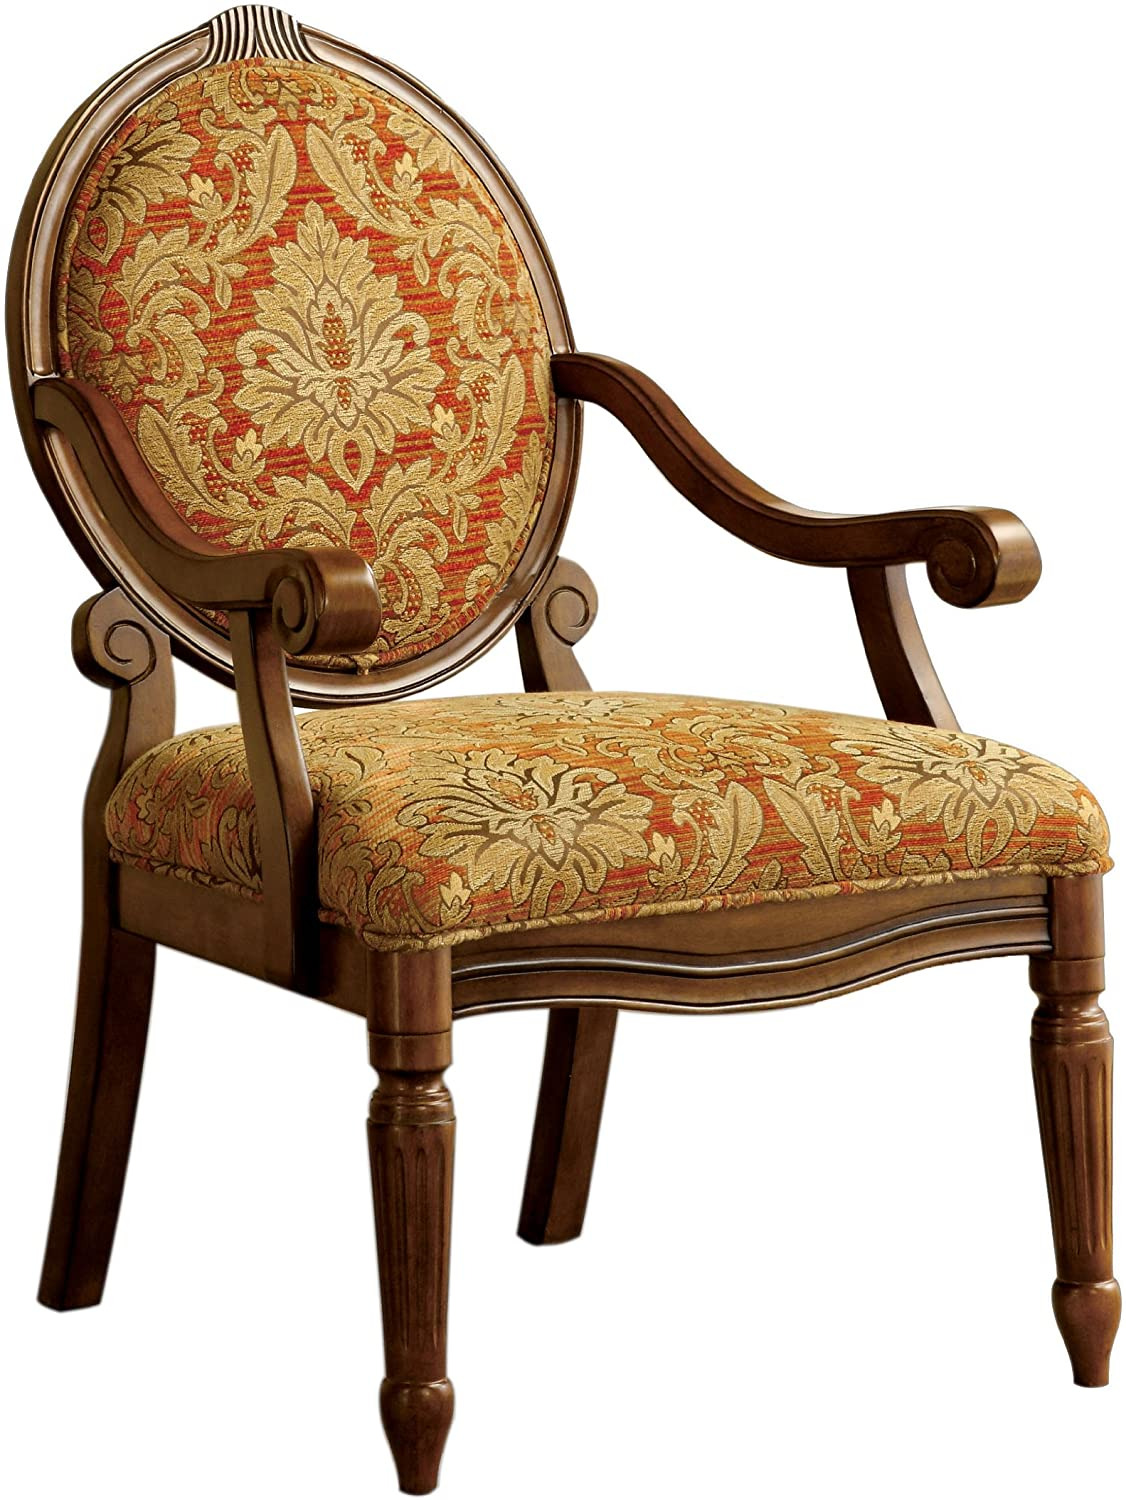 Cheap Antique Looking Furniture Best Of Furniture Of America Gwyneth Victorian Style Padded Fabric Arm Chair Antique Oak Finish